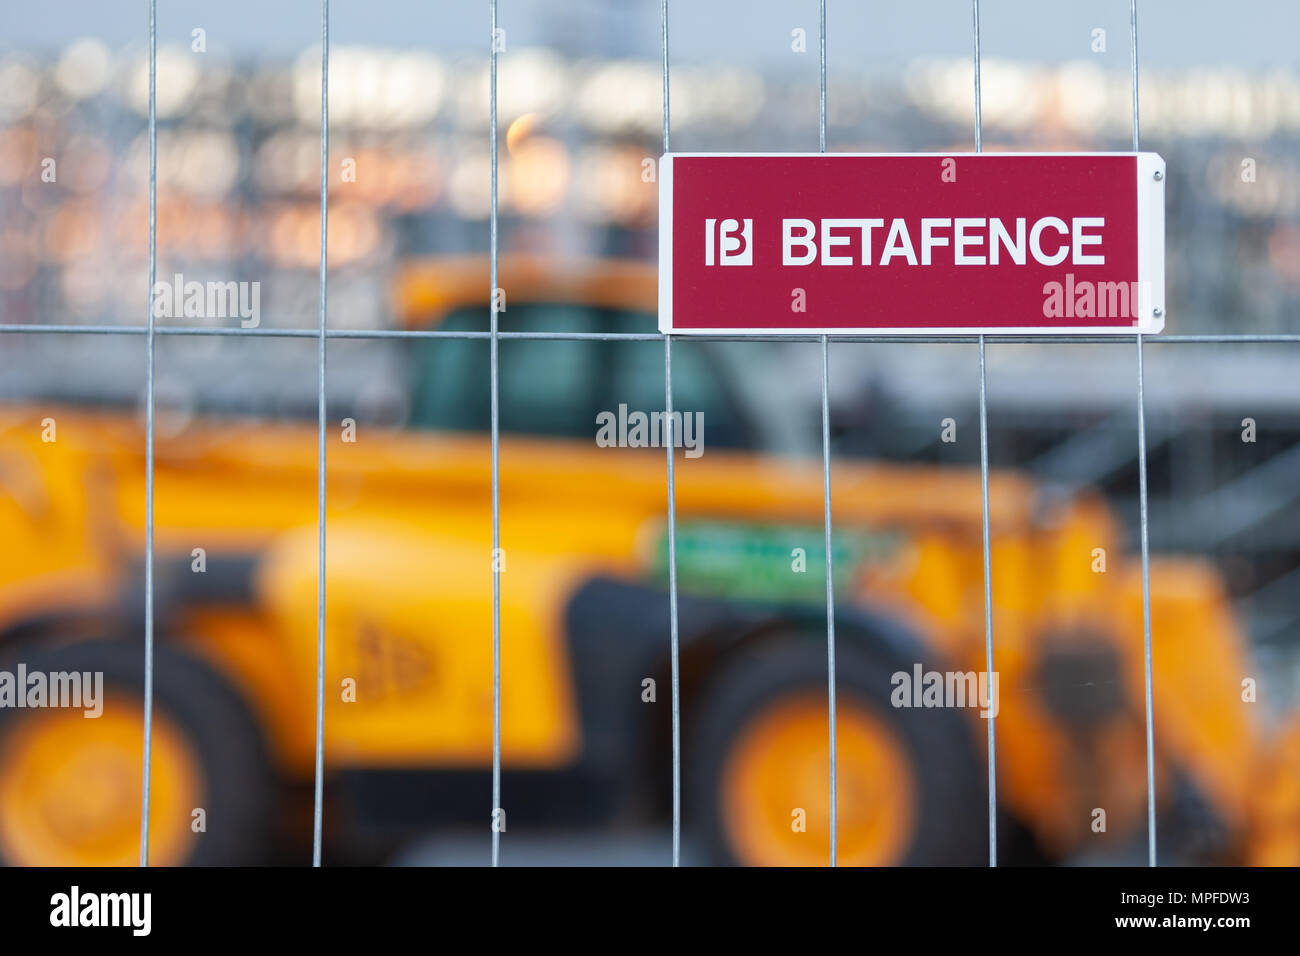 MOSCOW, RUSSIA - May 21, 2018: A plate of burgundy color with a white inscription fixed on a metal grid. Logotype: 'BETAFENCE'. Behind the fence in th - Stock Image